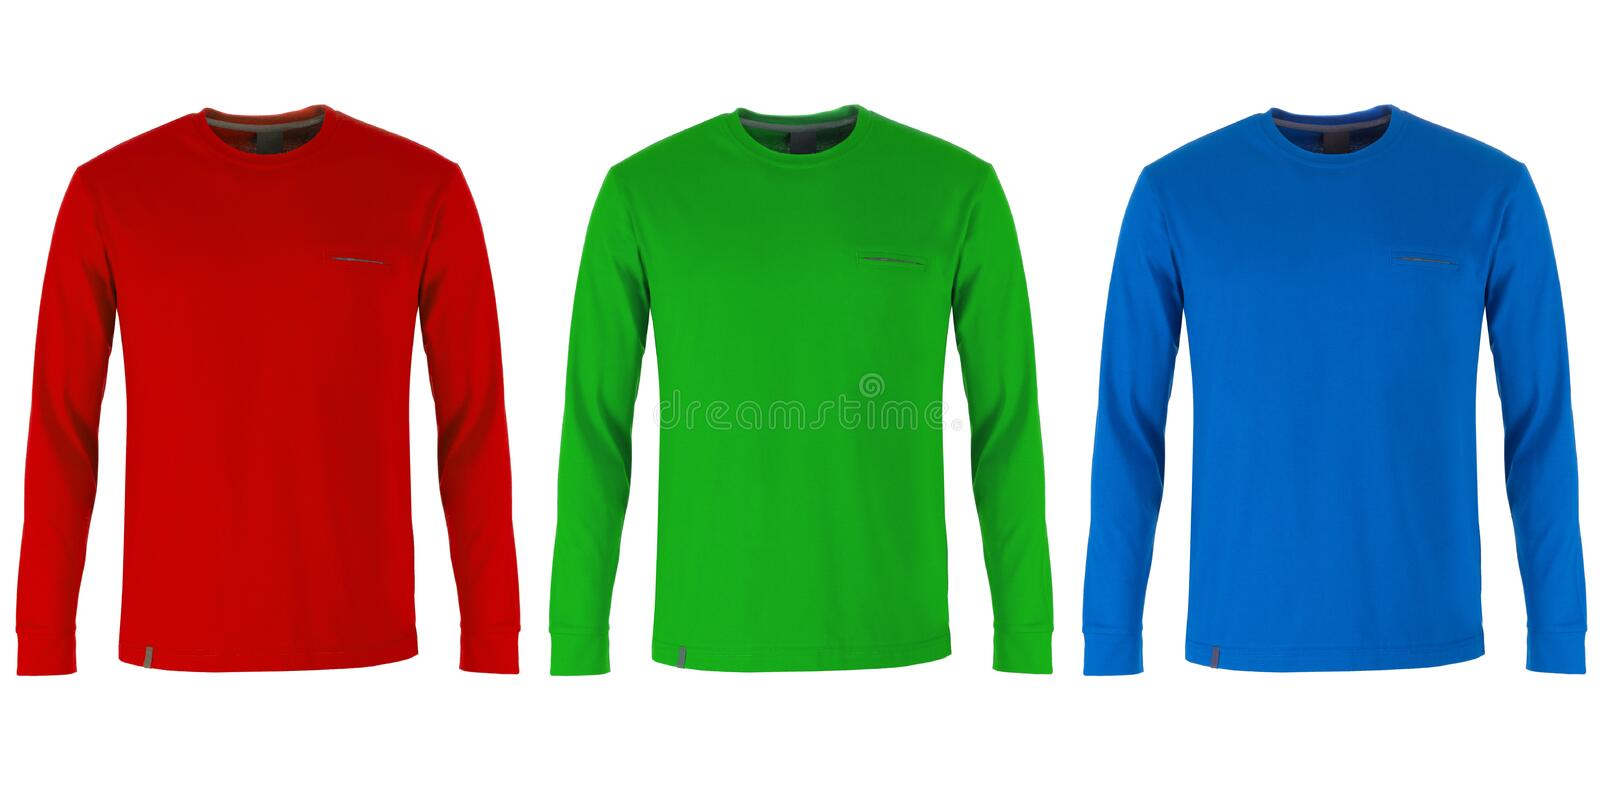 Red, green and blue long sleeve t-shirts stock photography